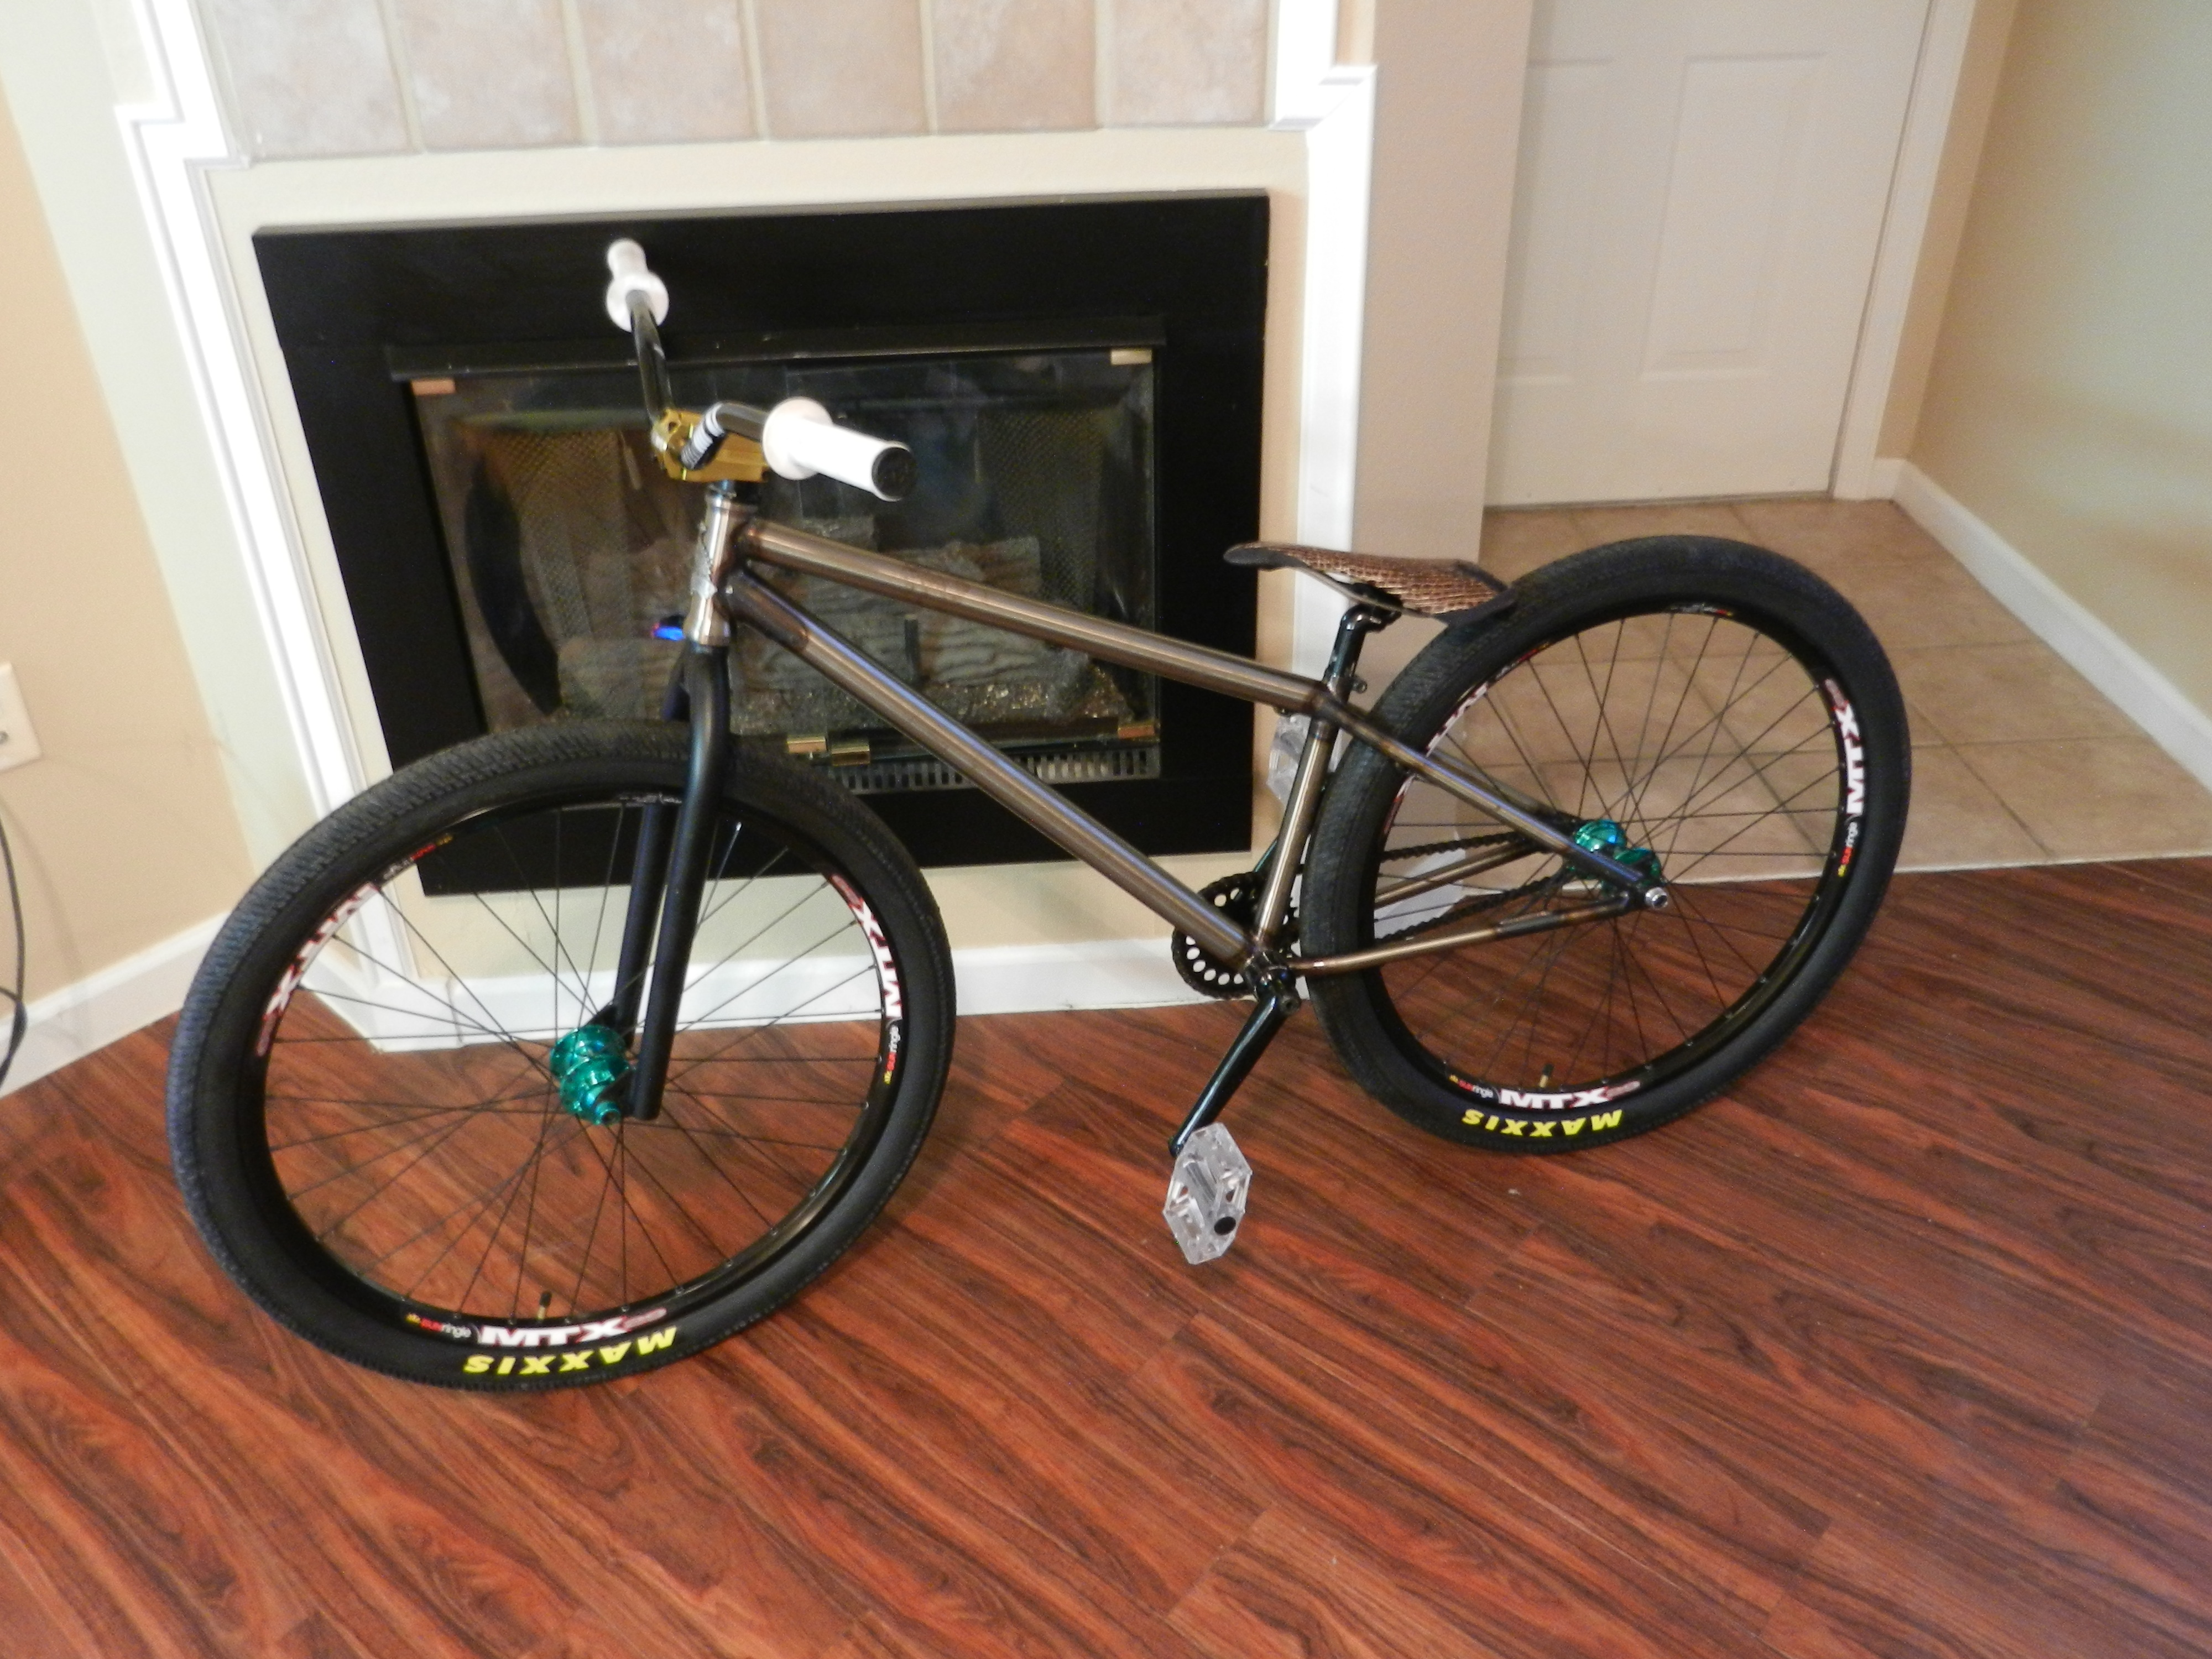 Tanner Bouchard's Black Market Edit 1 with Profile Racing